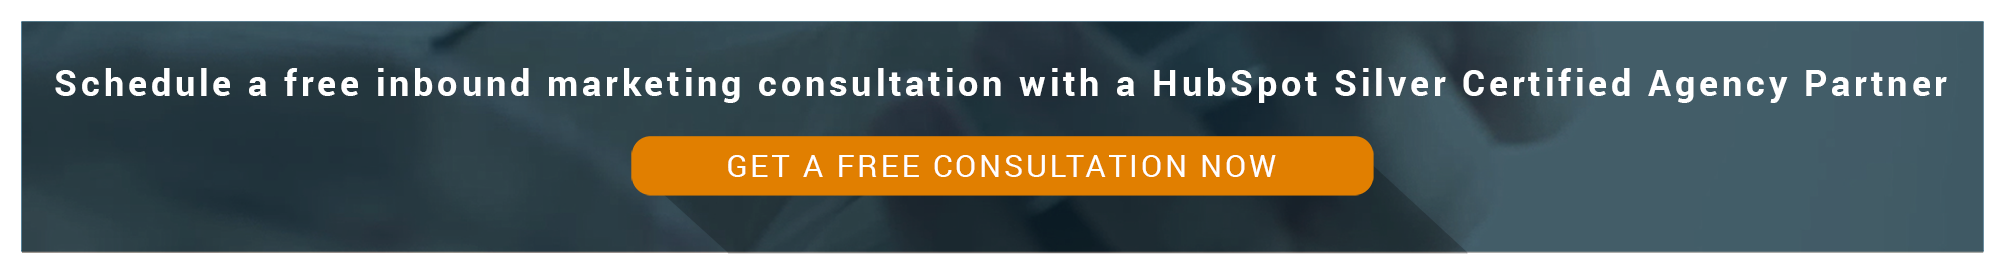 Schedule a free inbound marketing consultation with HubSpot Silver Certified Agency Partner Rapidan INbound